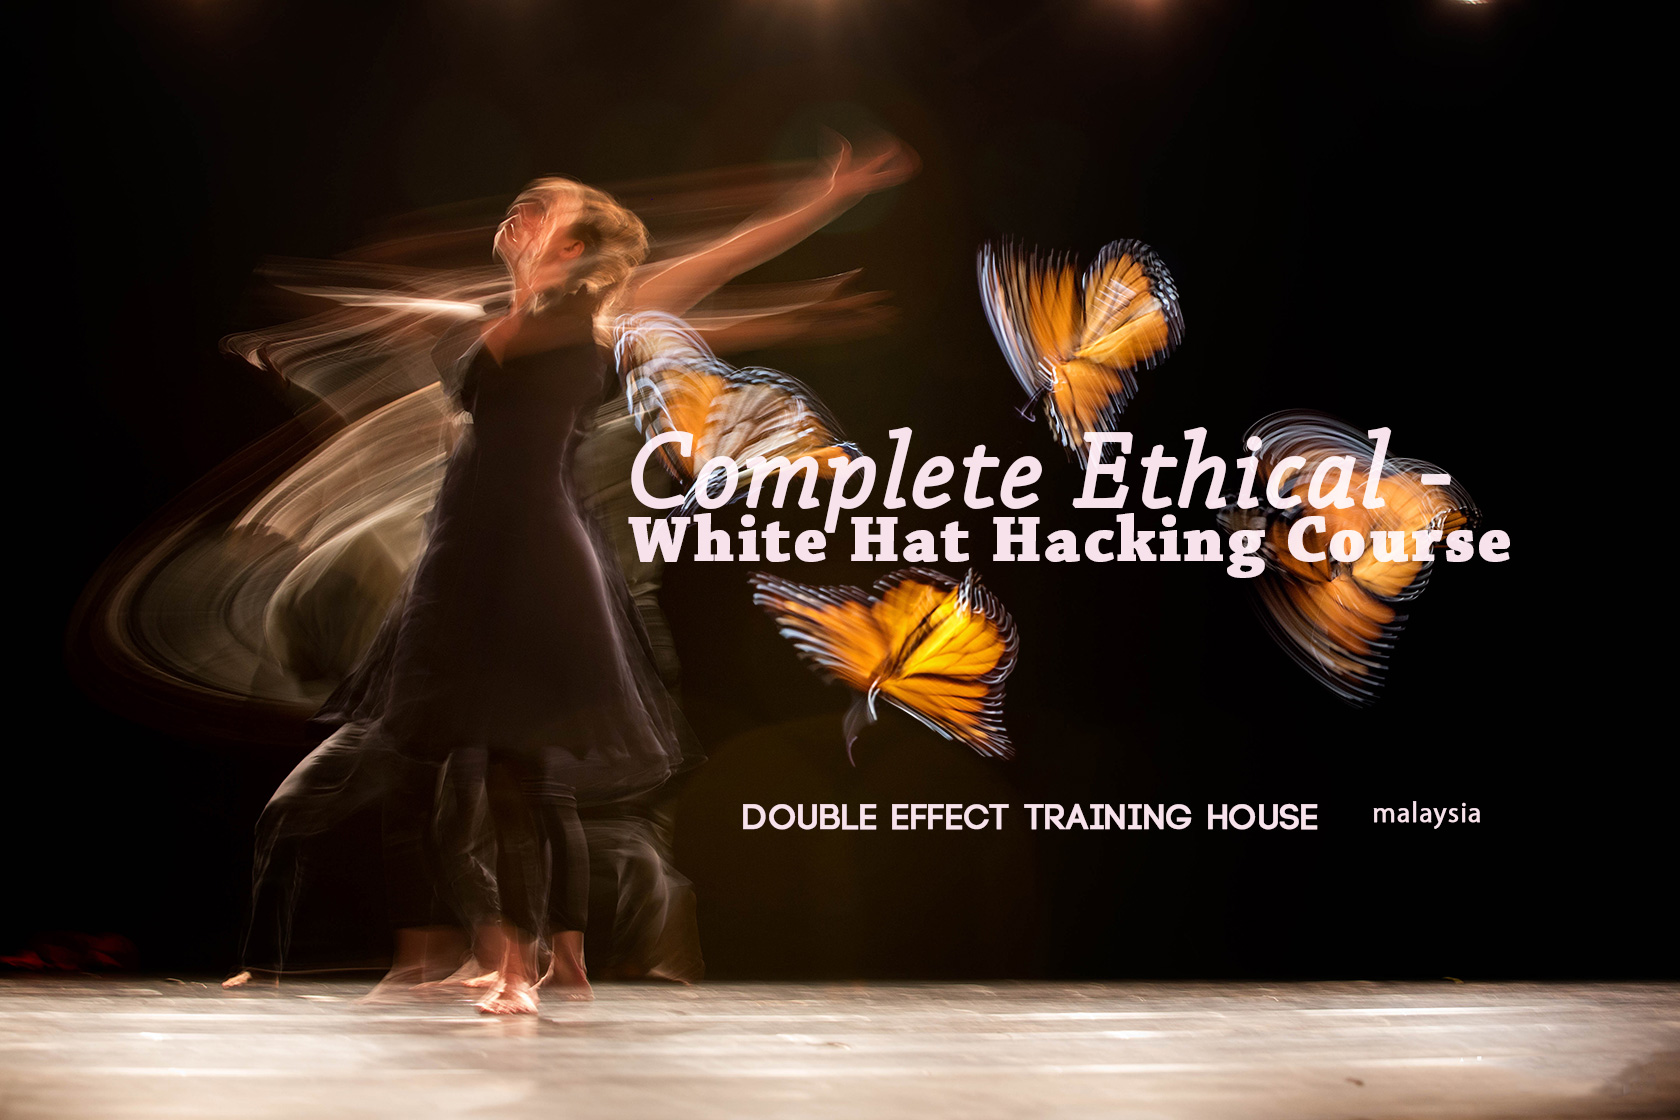 Complete Ethical - White Hat Hacking Course